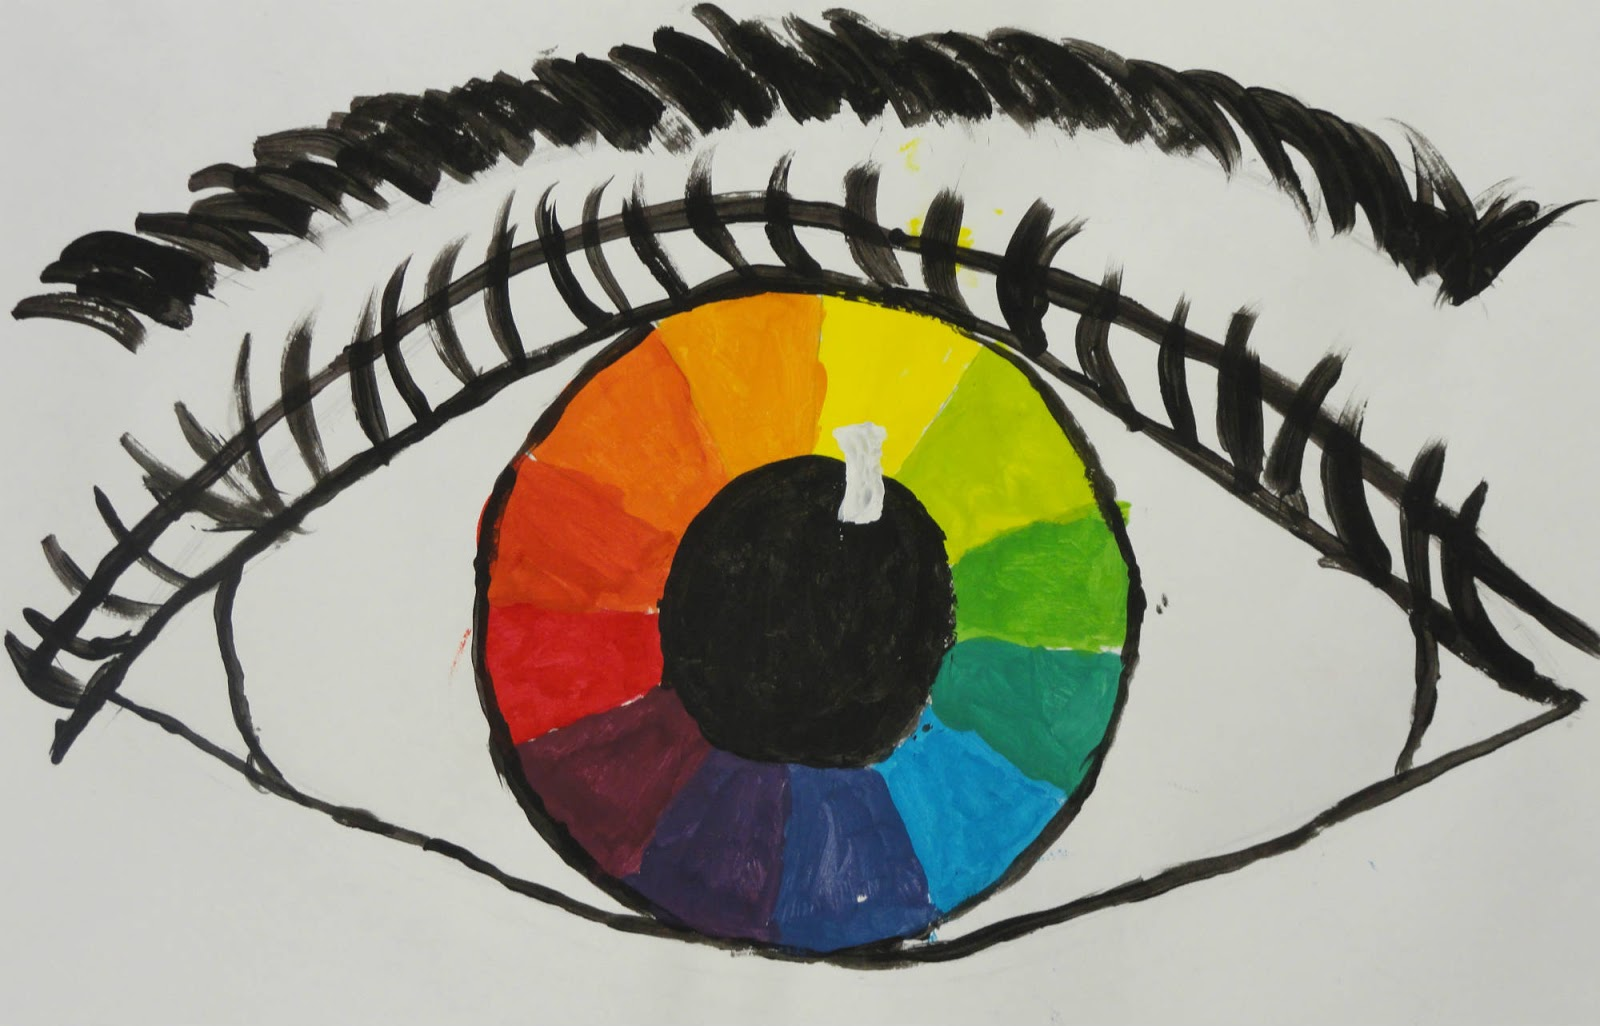 Remarkable Design Of The Color Wheel Ideas With Eye Paint Ideas With Colorful Pupil Ideas On The White Paper Ideas